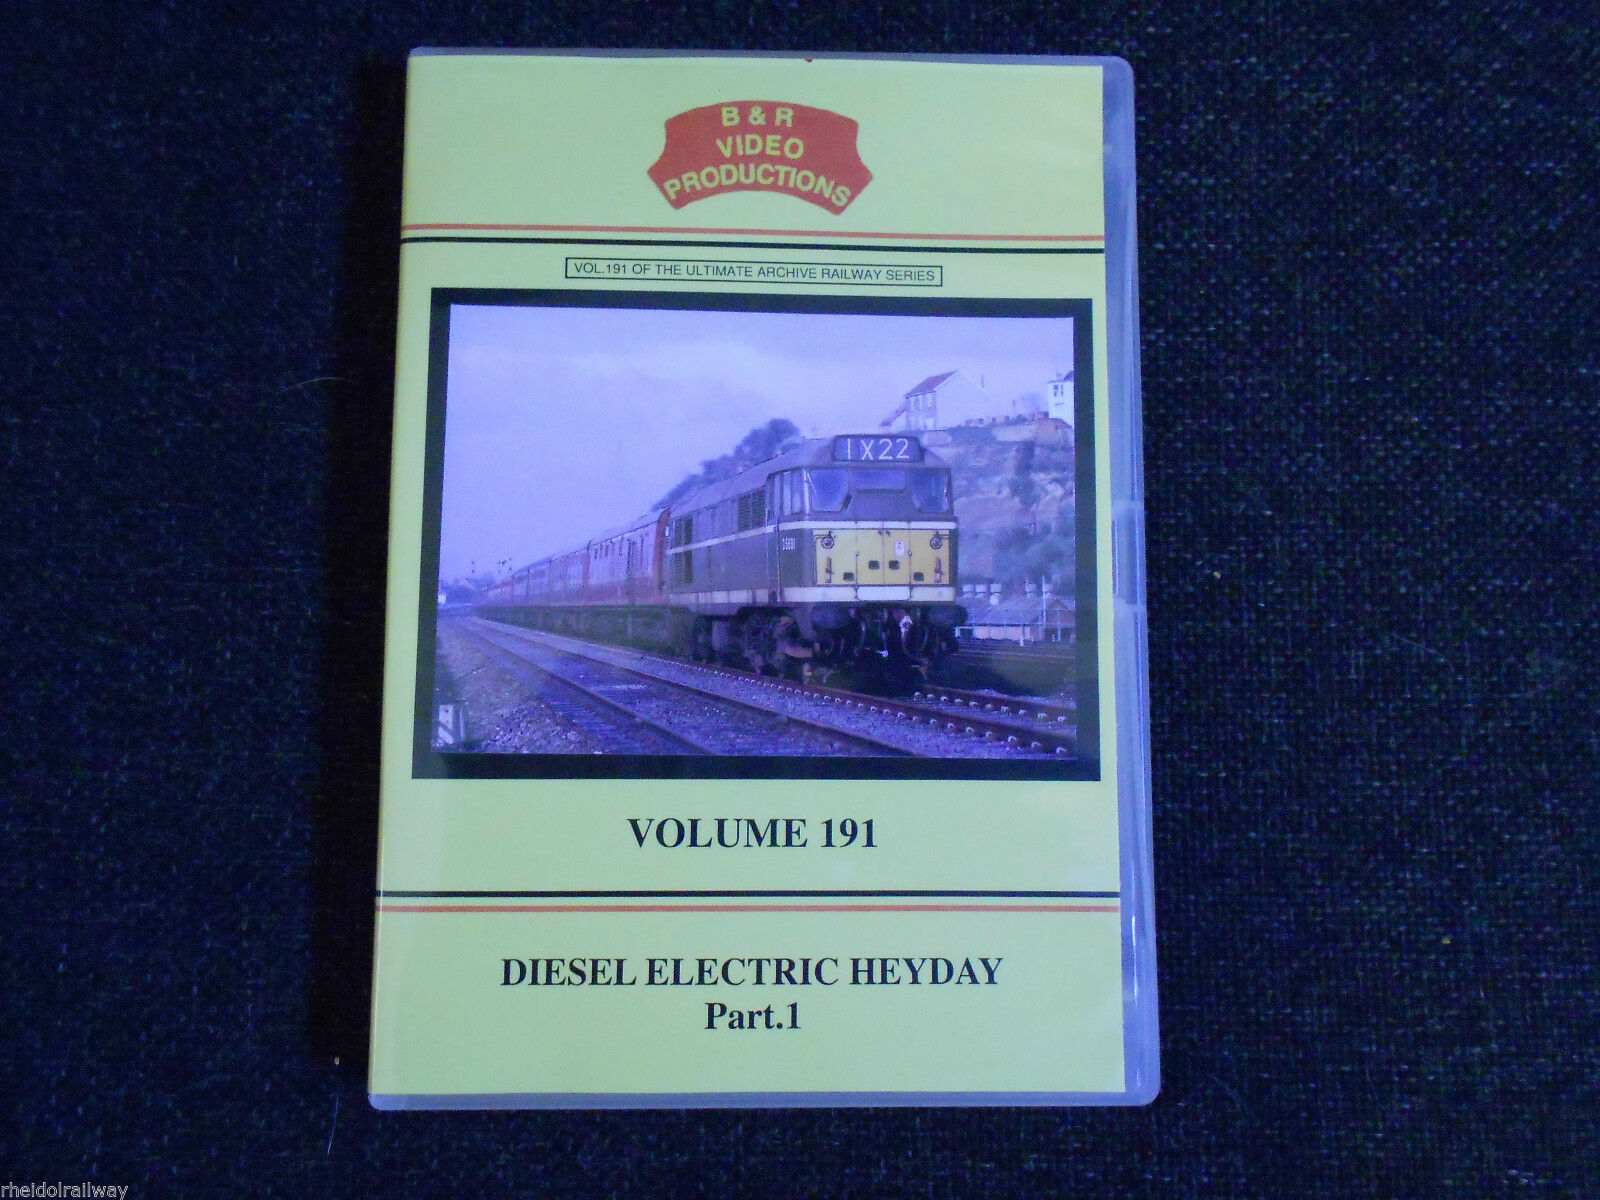 Metrovick, Dunstable Branch, Diesel Electric Heyday Part 1, B & R Volume 191 DVD - The Vale of Rheidol Railway